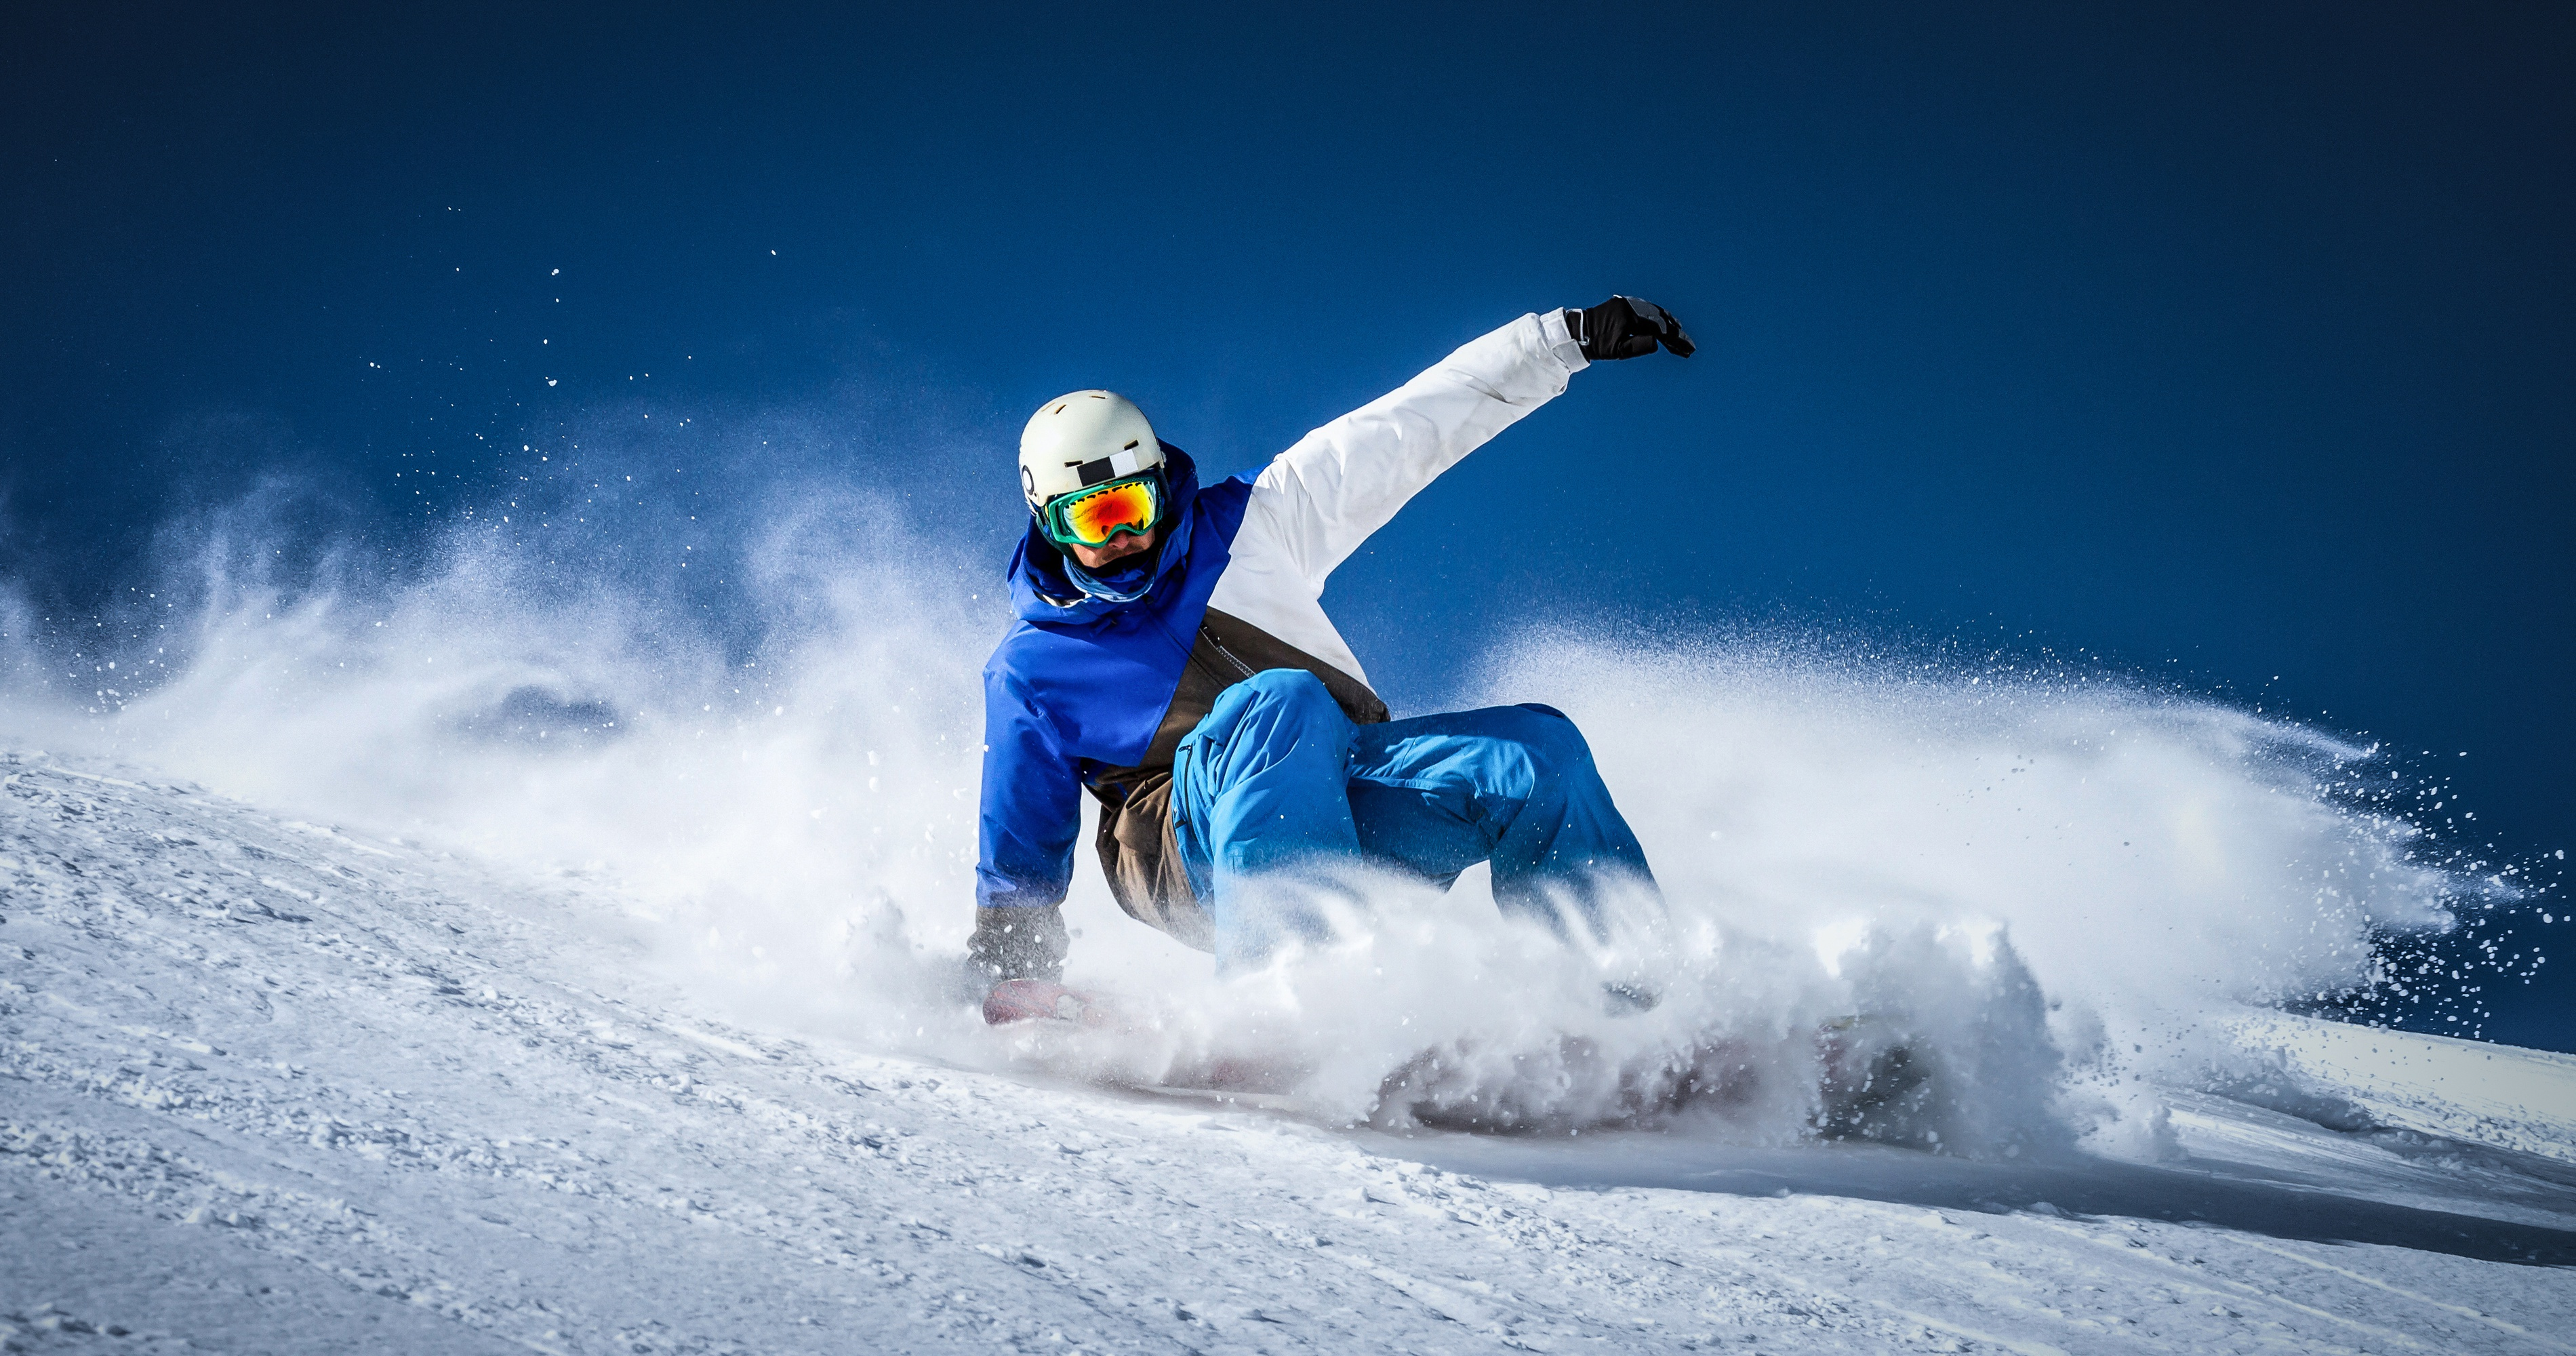 Sports 4k Wallpaper: Snowboarding, HD Sports, 4k Wallpapers, Images